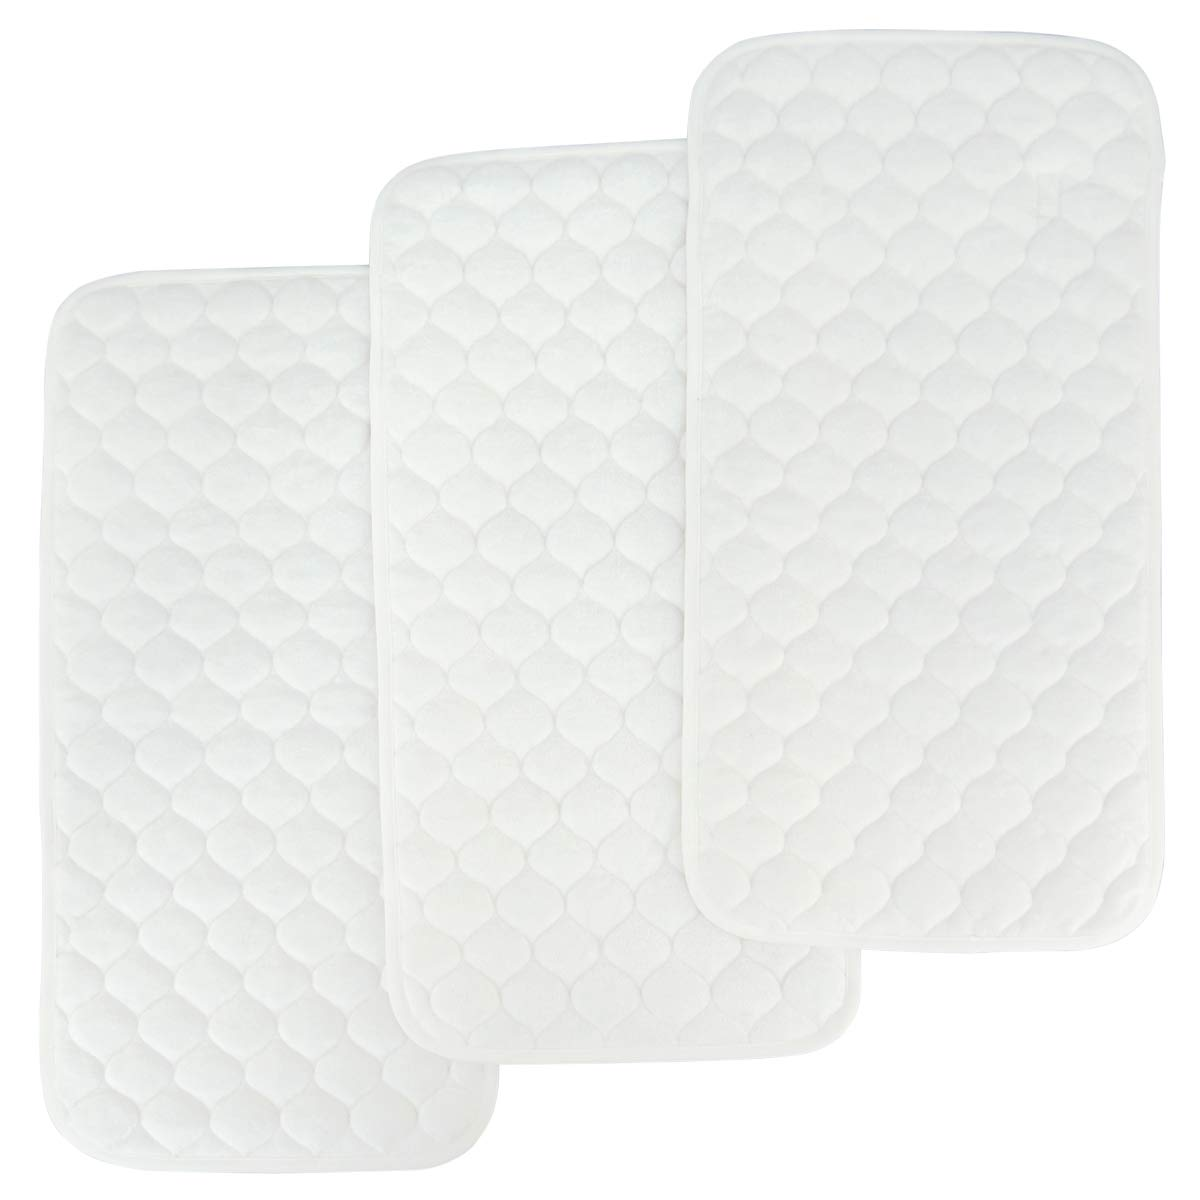 Bamboo Quilted Thicker Longer Waterproof Changing Pad Liners for Babies 3 Count (White Gourd Pattern